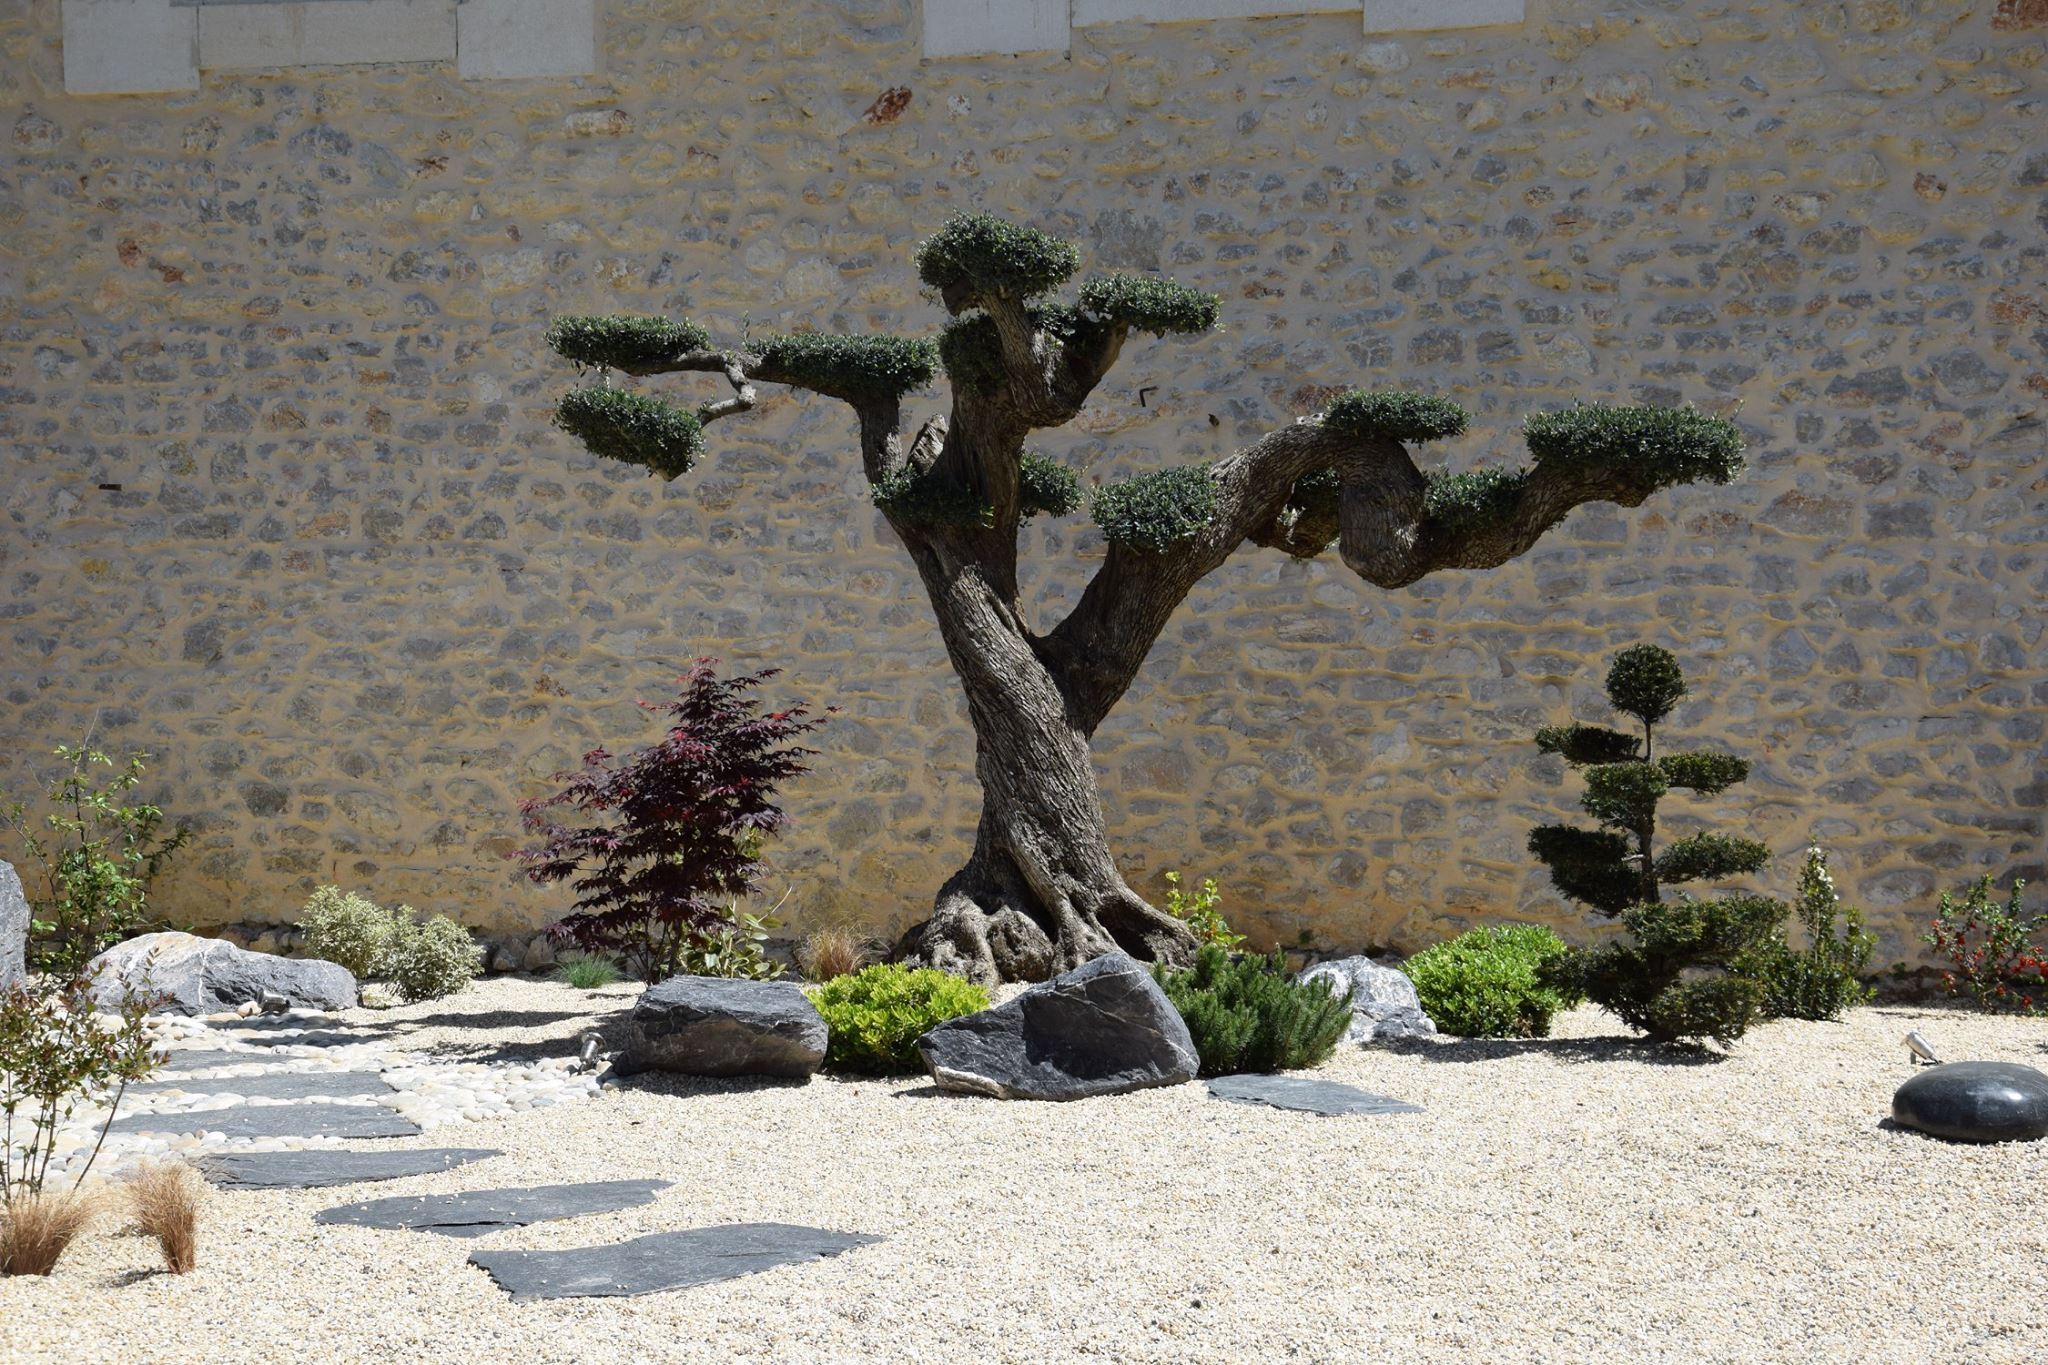 Decoration Bordure Jardin Decoration Jardin Montpellier Deco Jardin Nimes Bordure Jardin